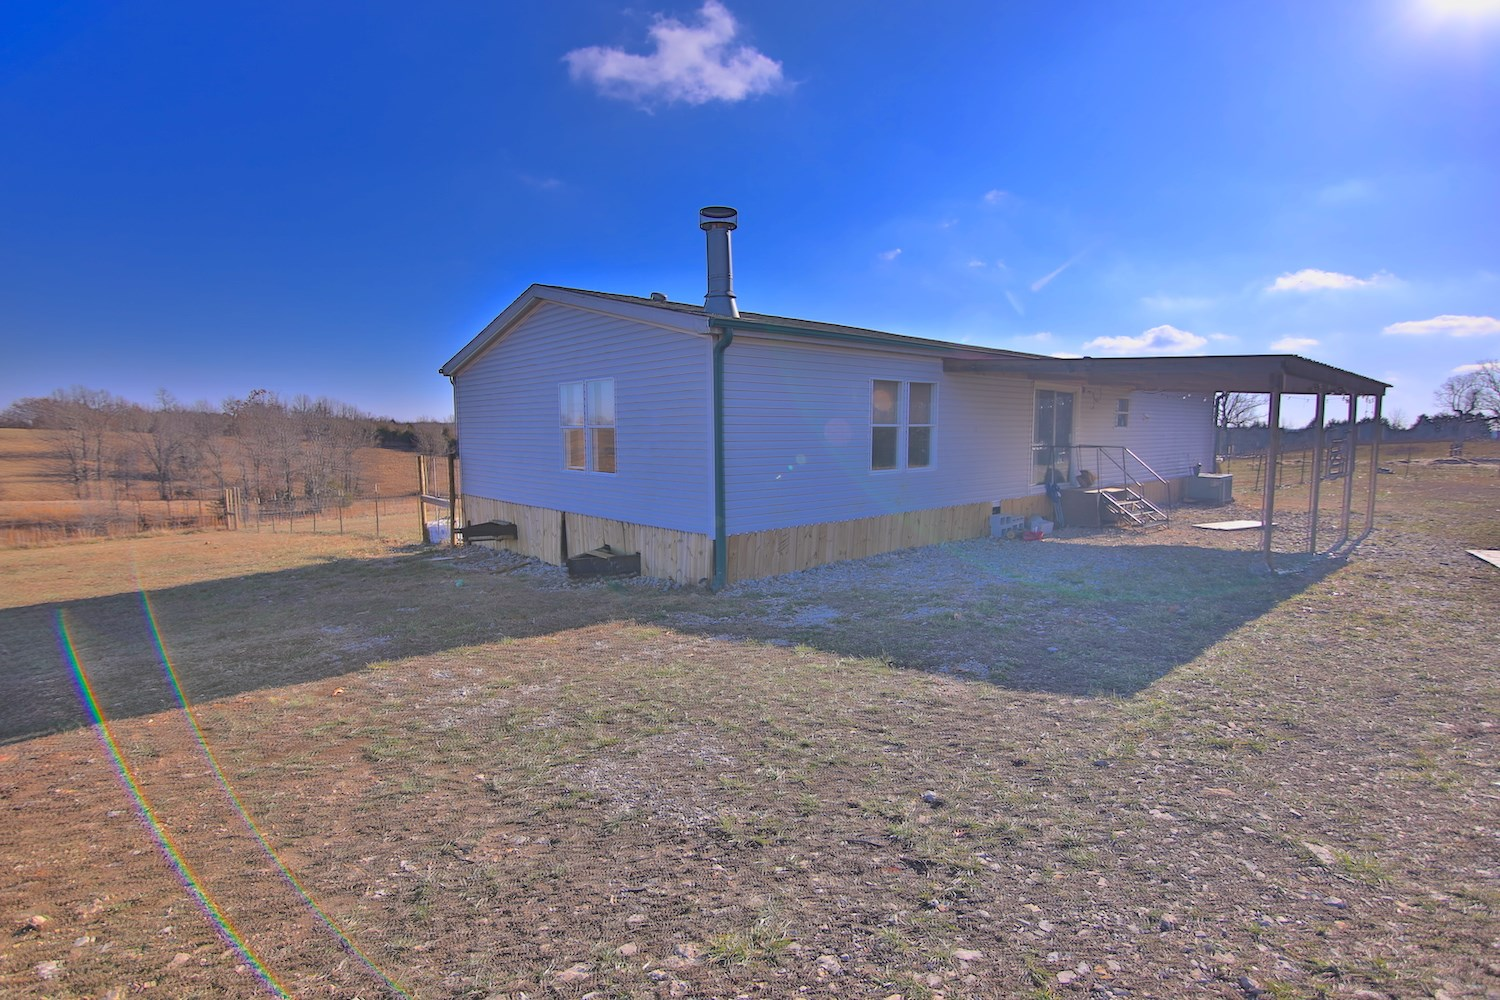 Country Home with Acreage for Sale in the Ozarks